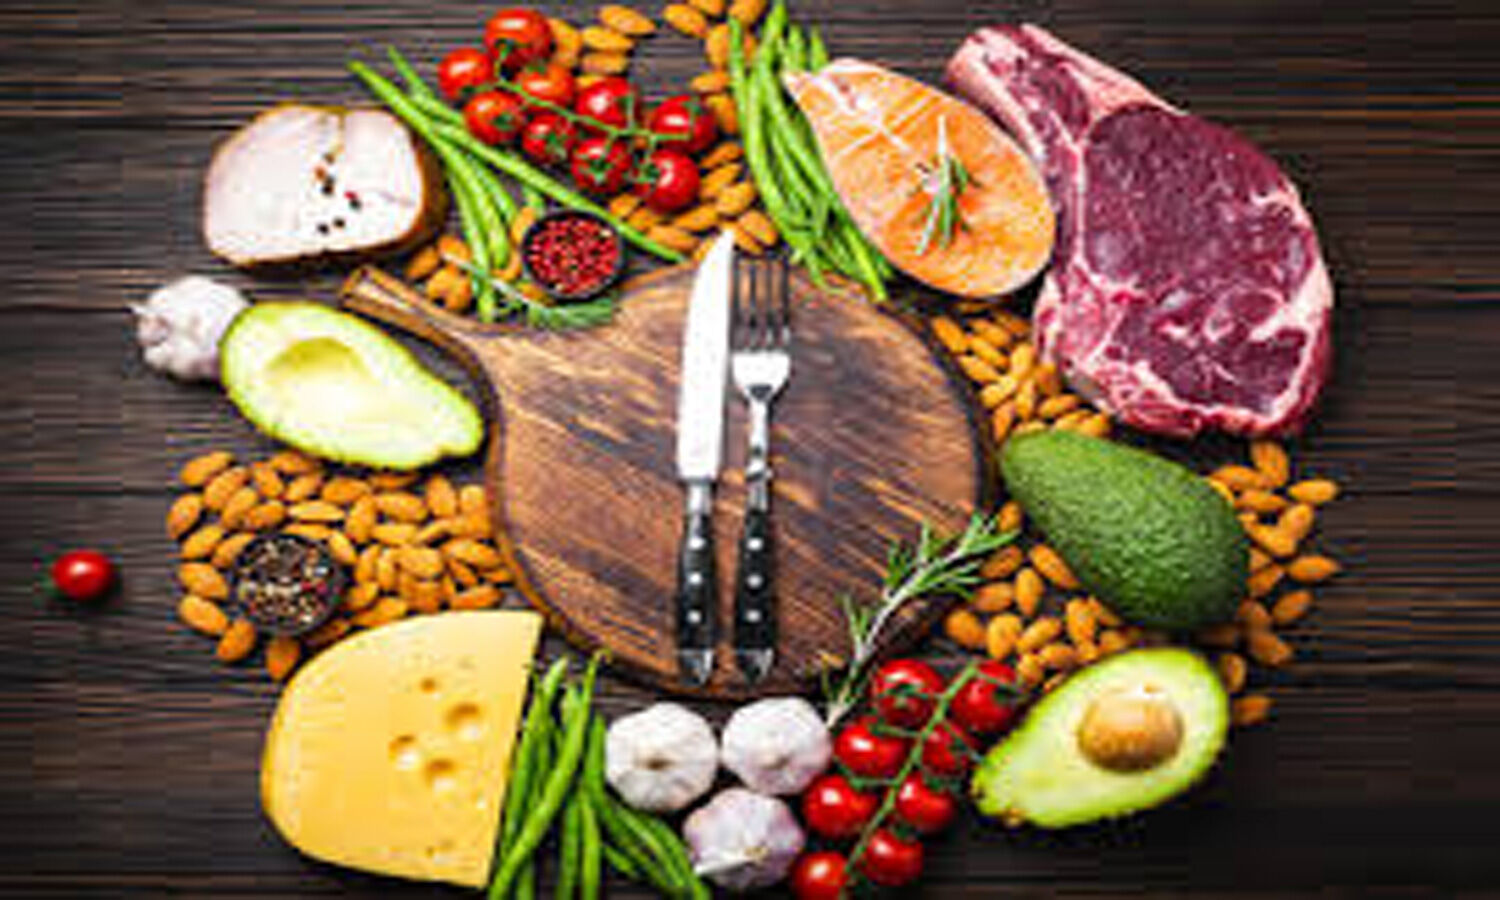 Mediterranean diet may help preserve cognitive function